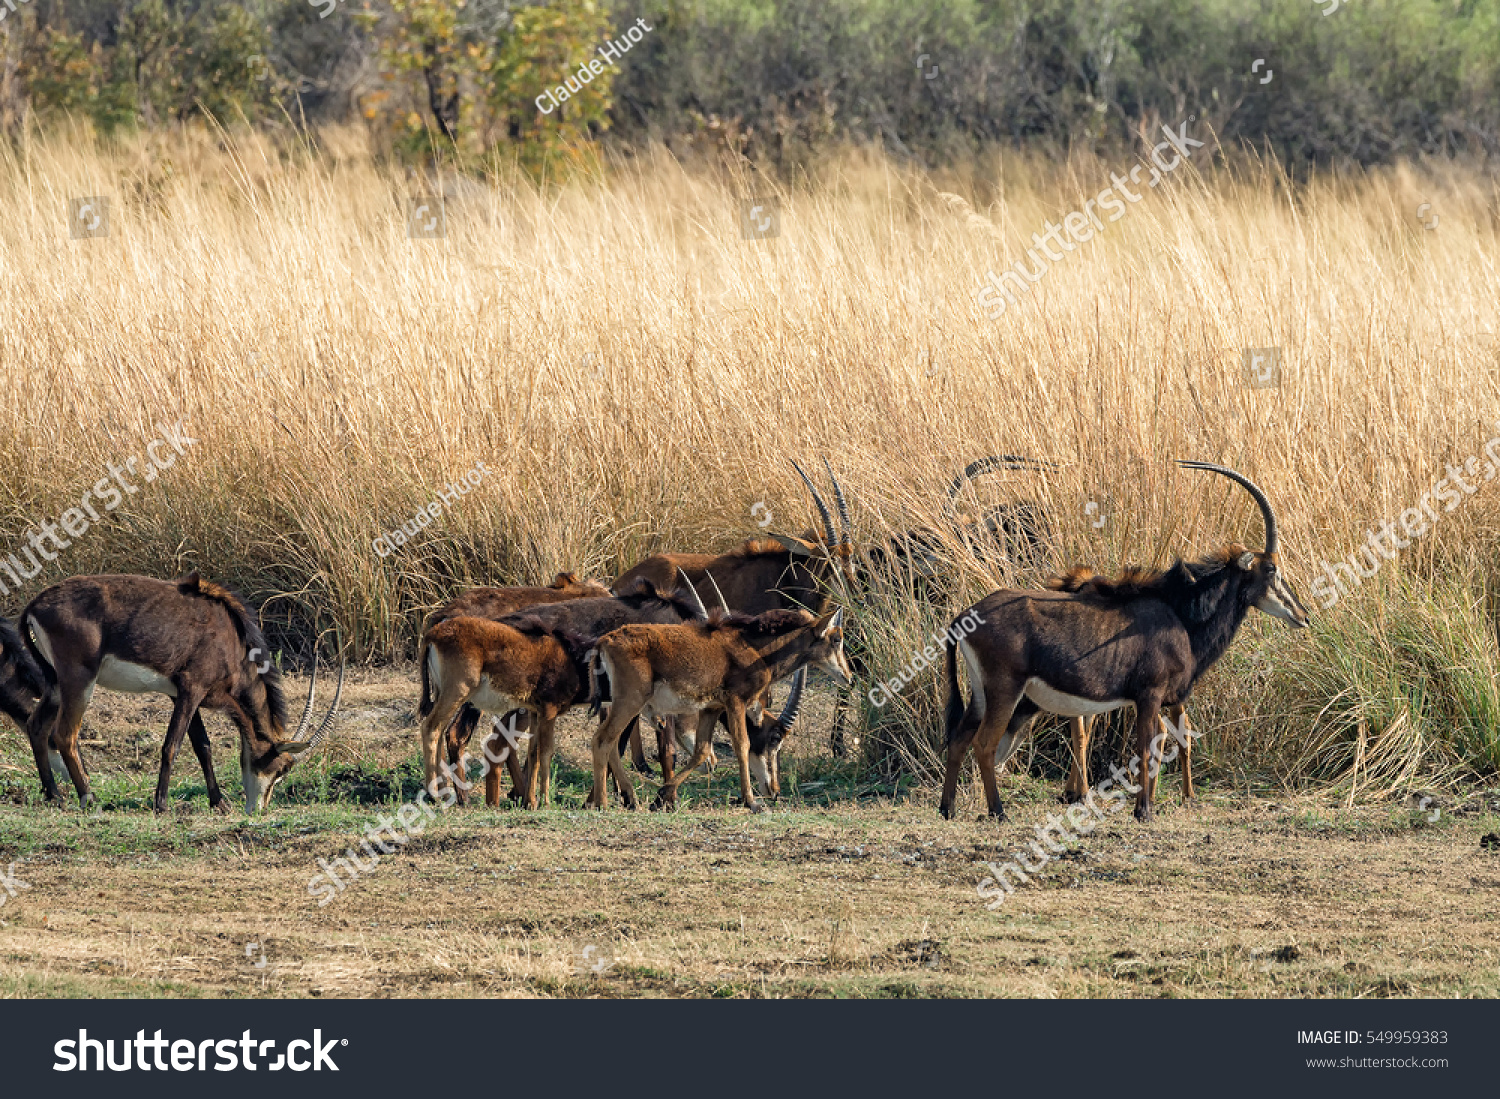 Herd of sable antelope (Hippotragus niger) feed around tall golden grass in the Mahango Game Reserve inside the Bwabwata National Park, Caprivi Strip, Namibia